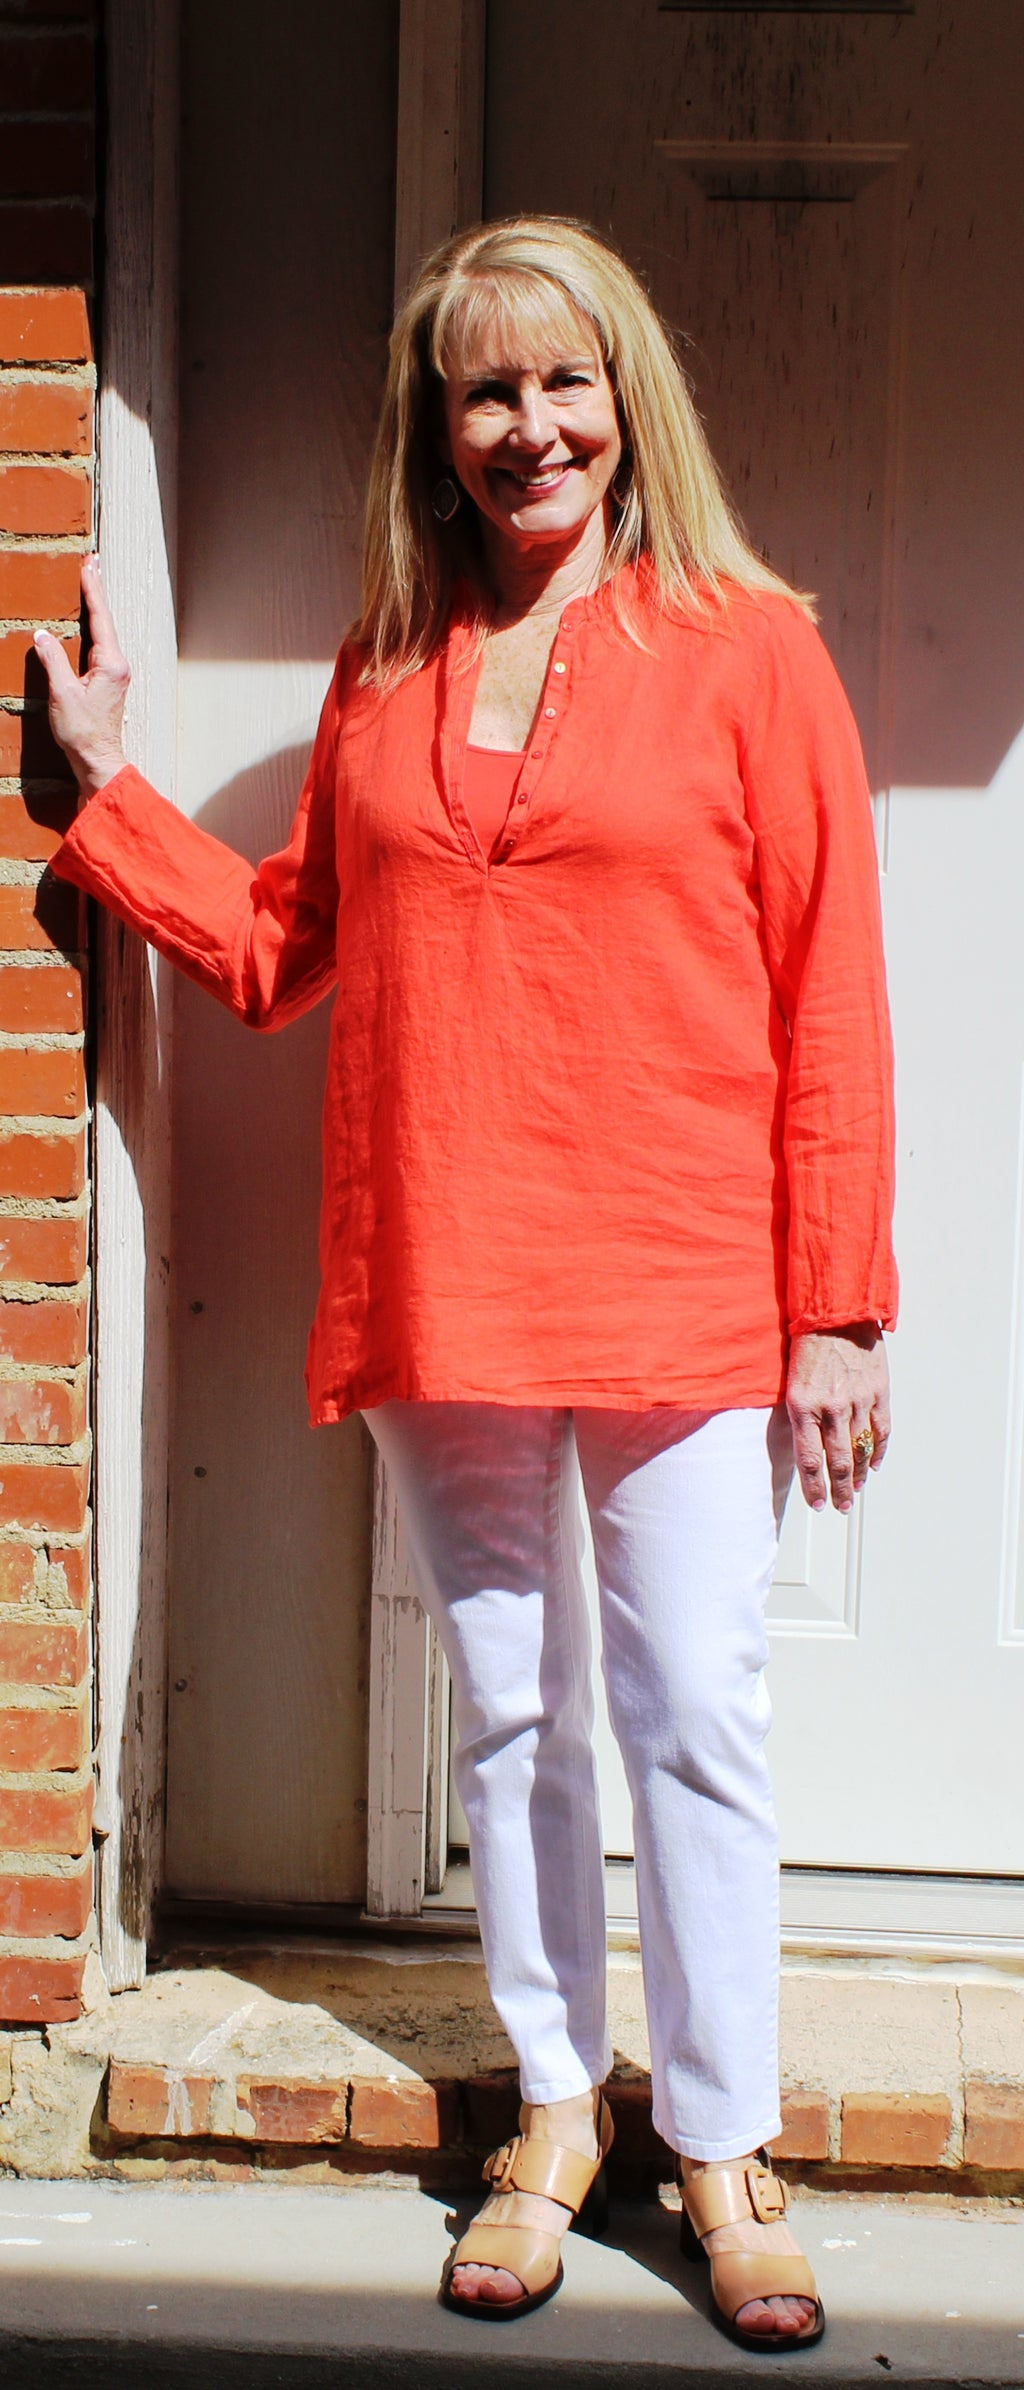 Eileen Fisher Mandarin Collar Tunic in Organic Handkerchief Linen in Red Lory